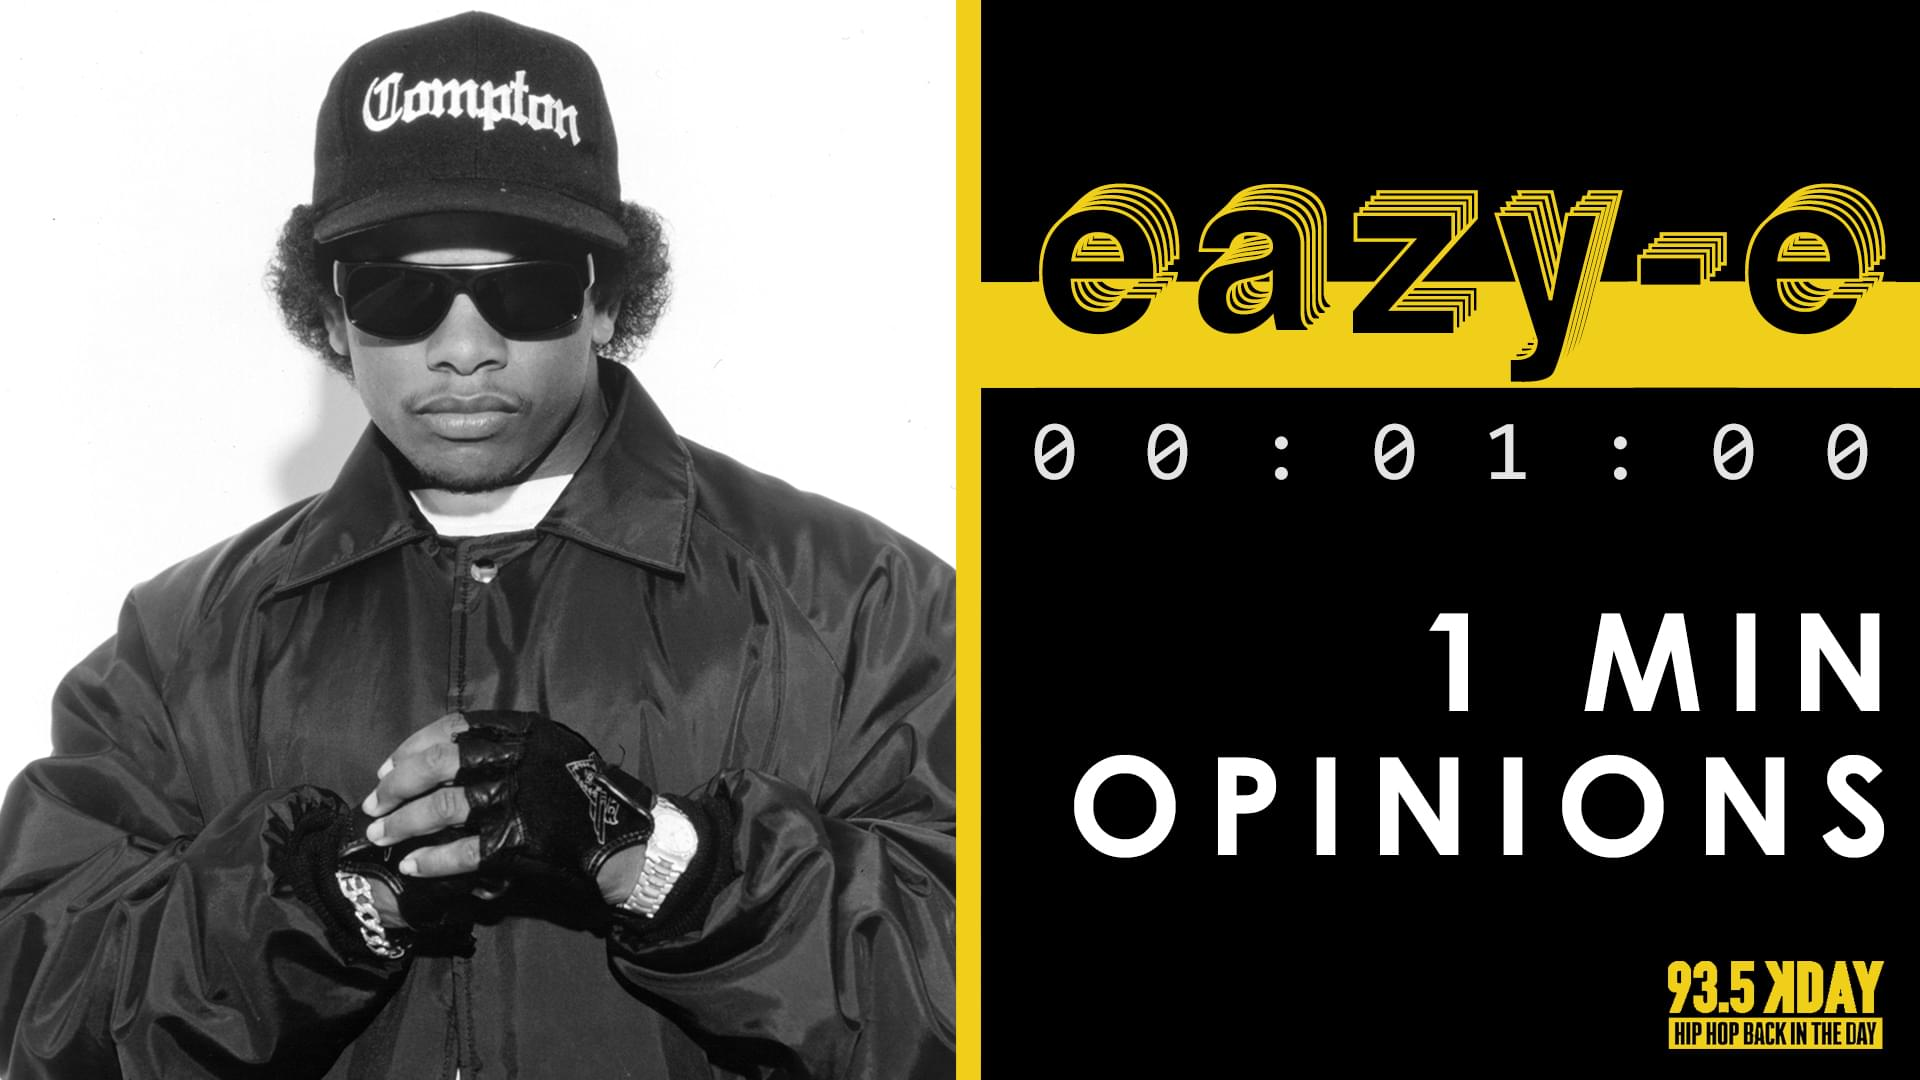 935 KDAY DJ's Share Their '1 Minute Opinions' On The Late Eazy-E [WATCH]